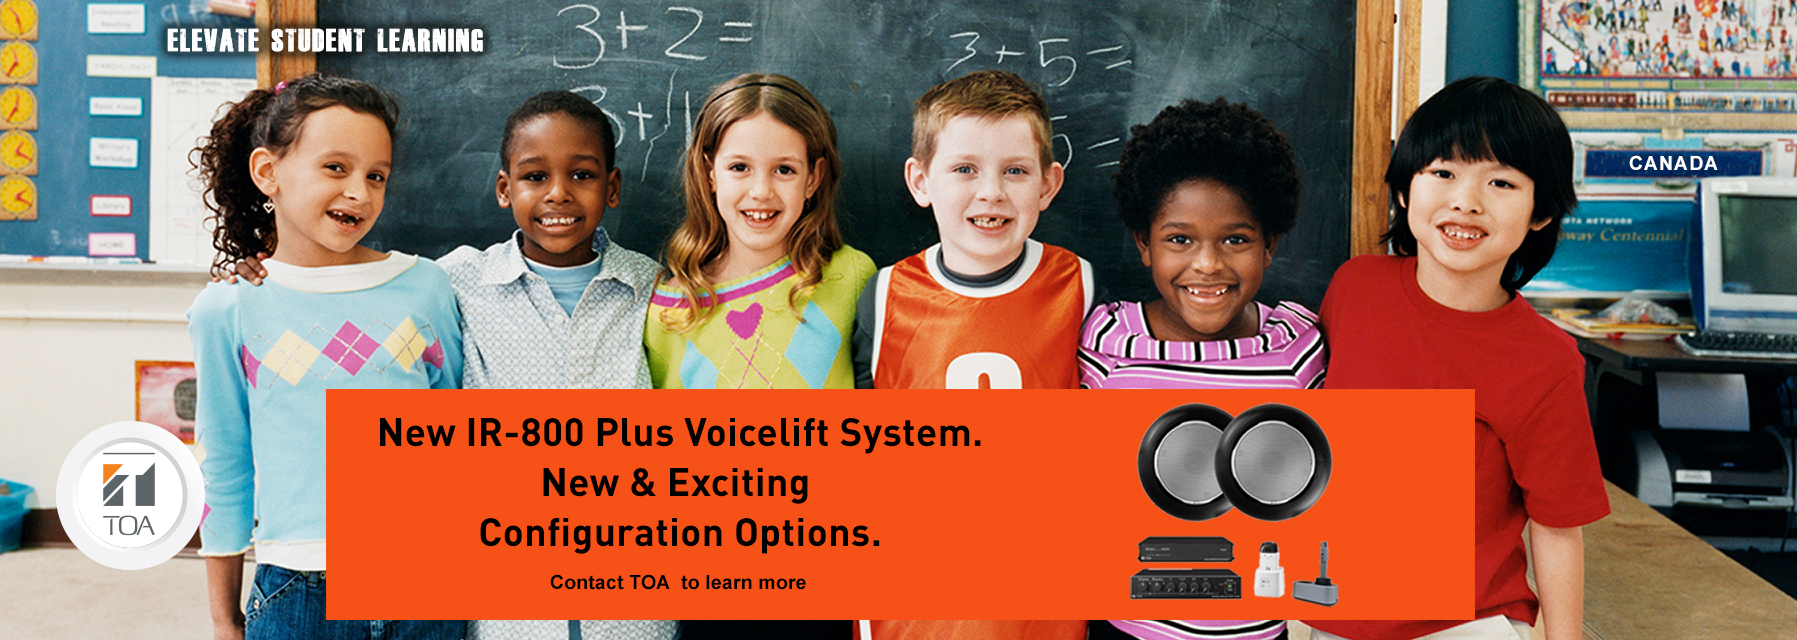 School, education, voicelift, classroom audio, IR-800, TOA, TOA canada, sound dispersion, classroom speaker, frontrow, techer mic, juno